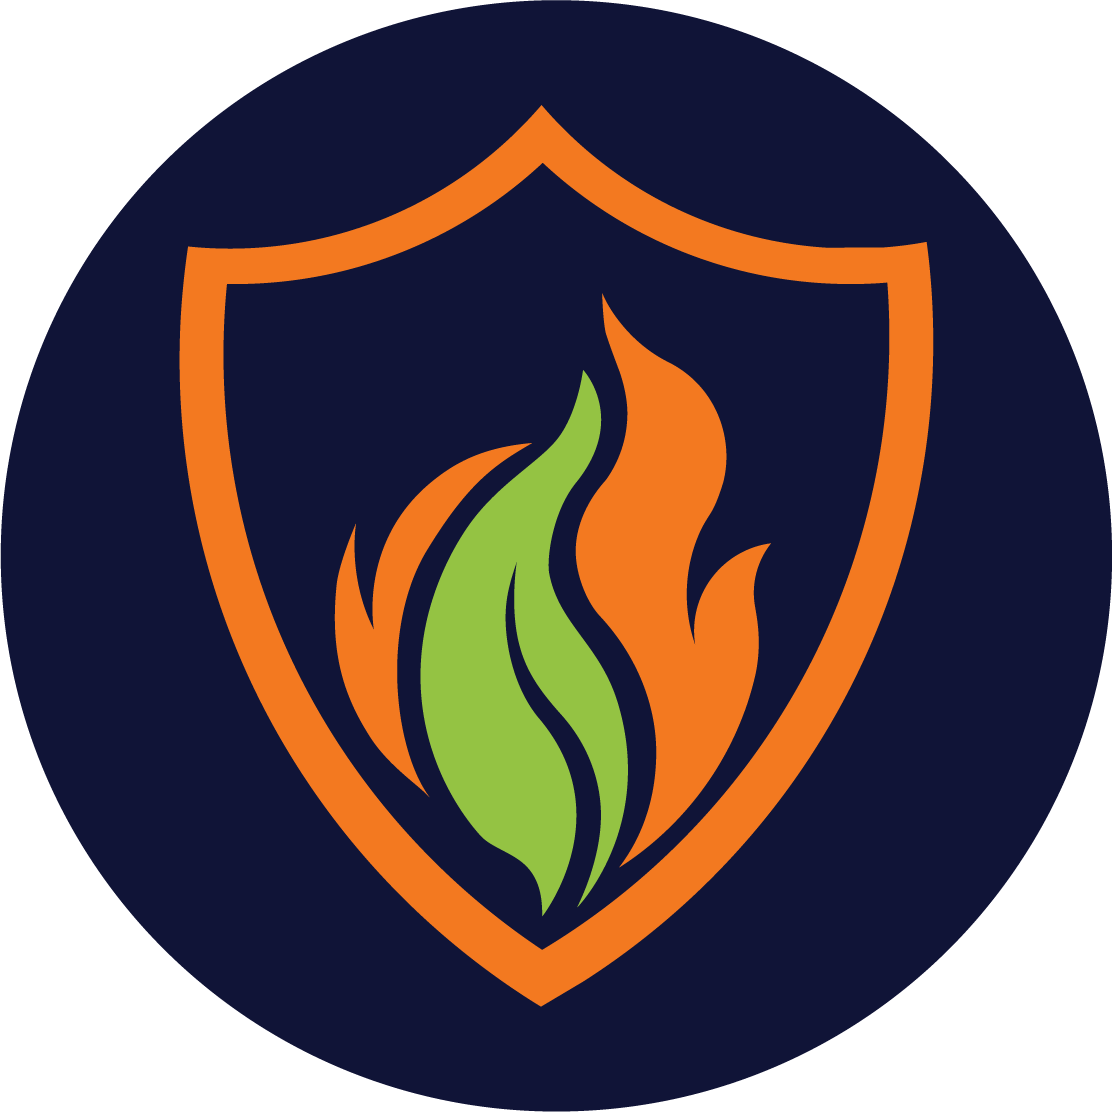 FlameSlayer colored  icon logo